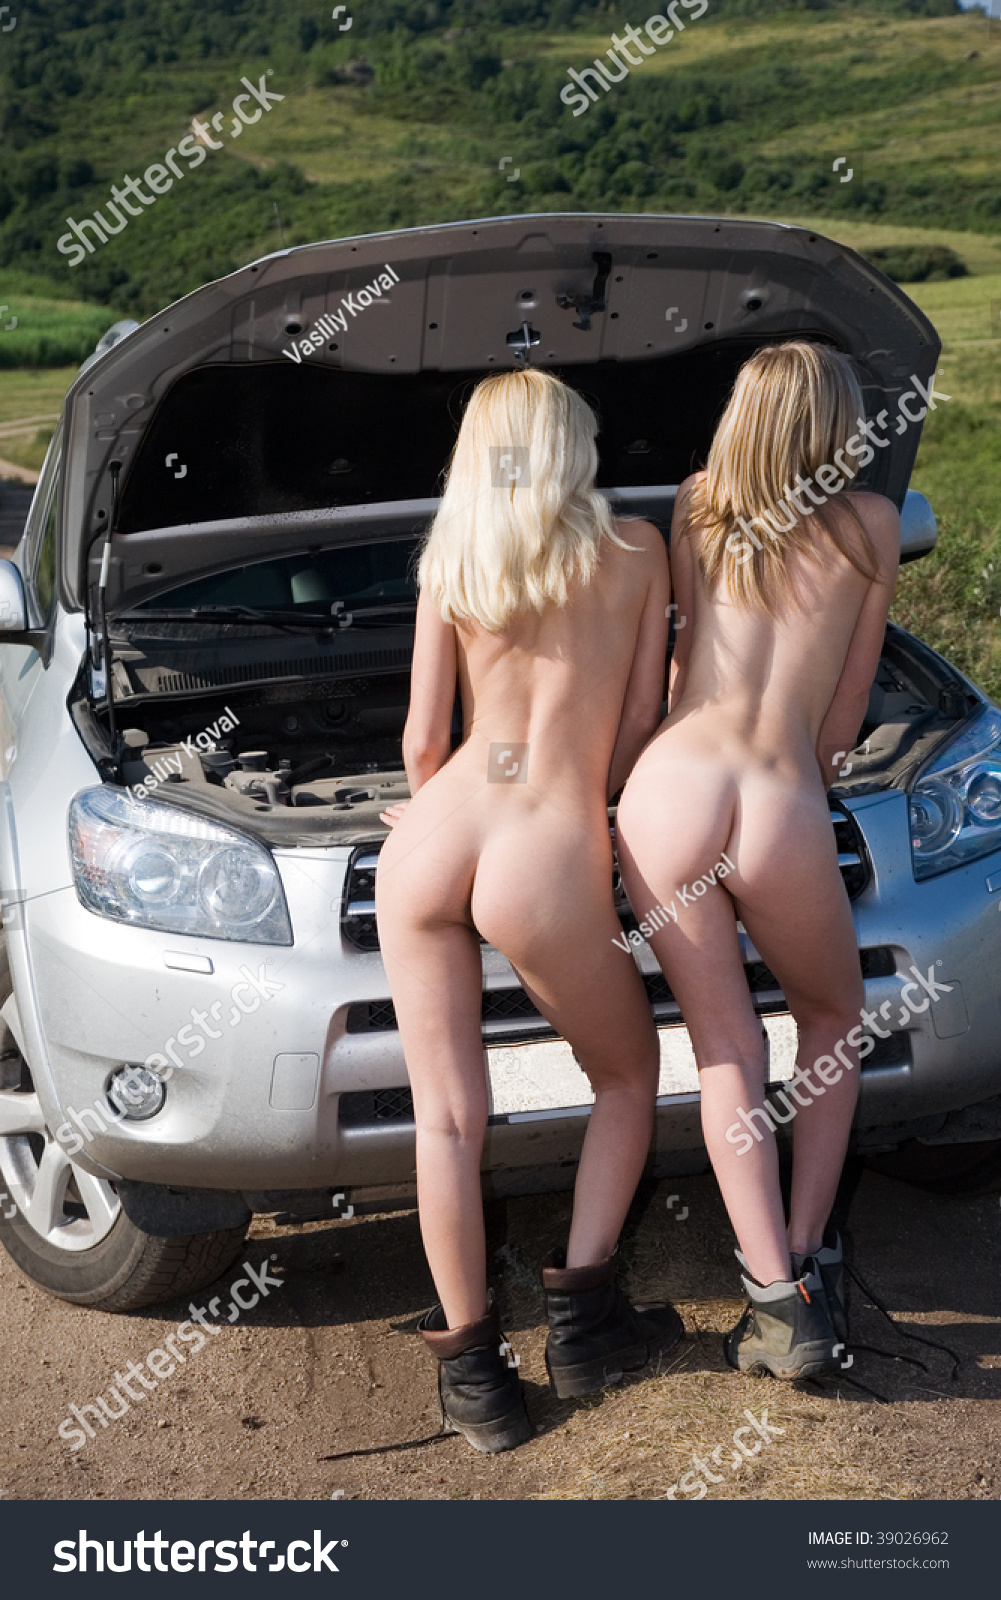 Two Young Nude Girls Broken Car Stock Photo 39026962 -2004